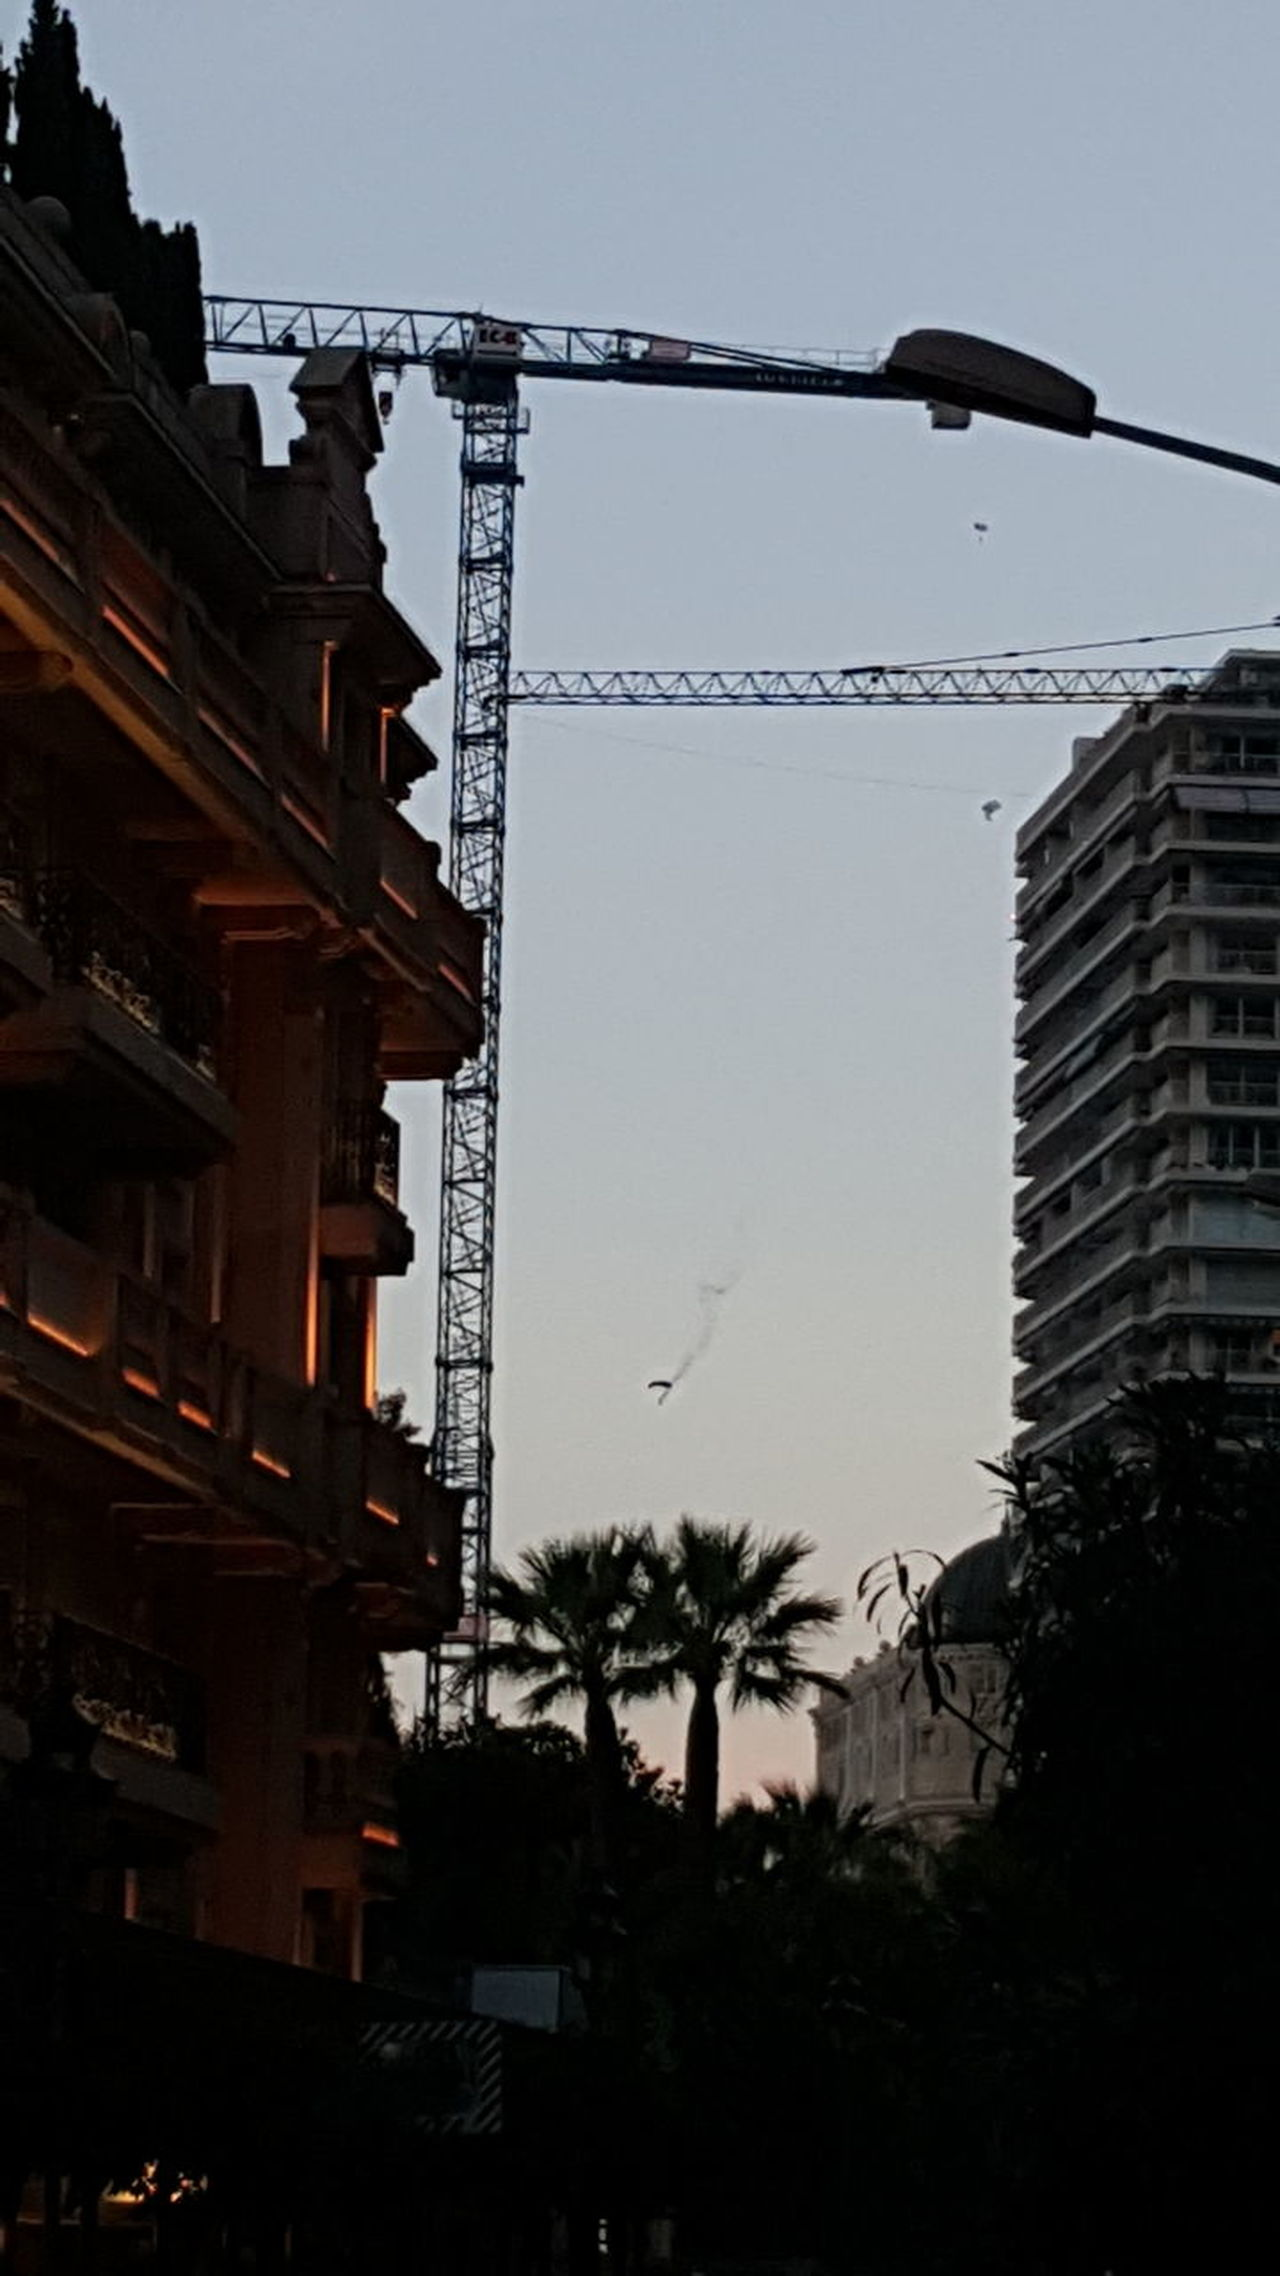 Parachute Parachuting Parachute Jump Fumigène Monaco Business Finance And Industry Architecture Built Structure Silhouette Construction Site Outdoors City Building Exterior No People Golf Club Sky Tree Day Metal Industry